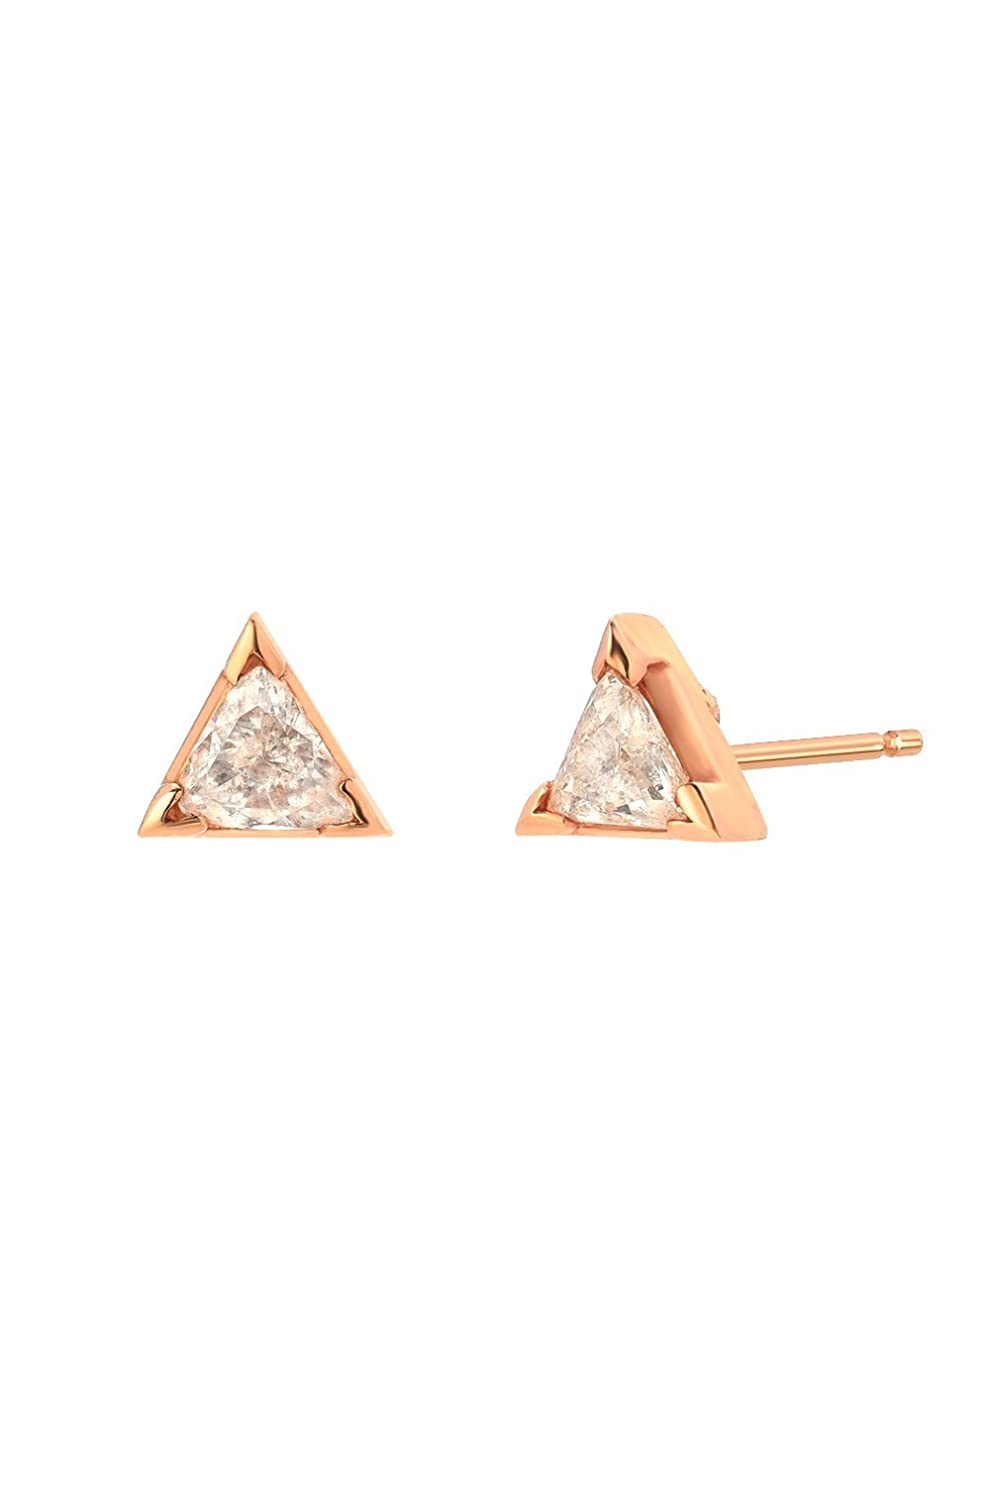 937287e24 Amazon.com: Diamond trillion stud earrings, Zoe Lev Jewelry: Handmade